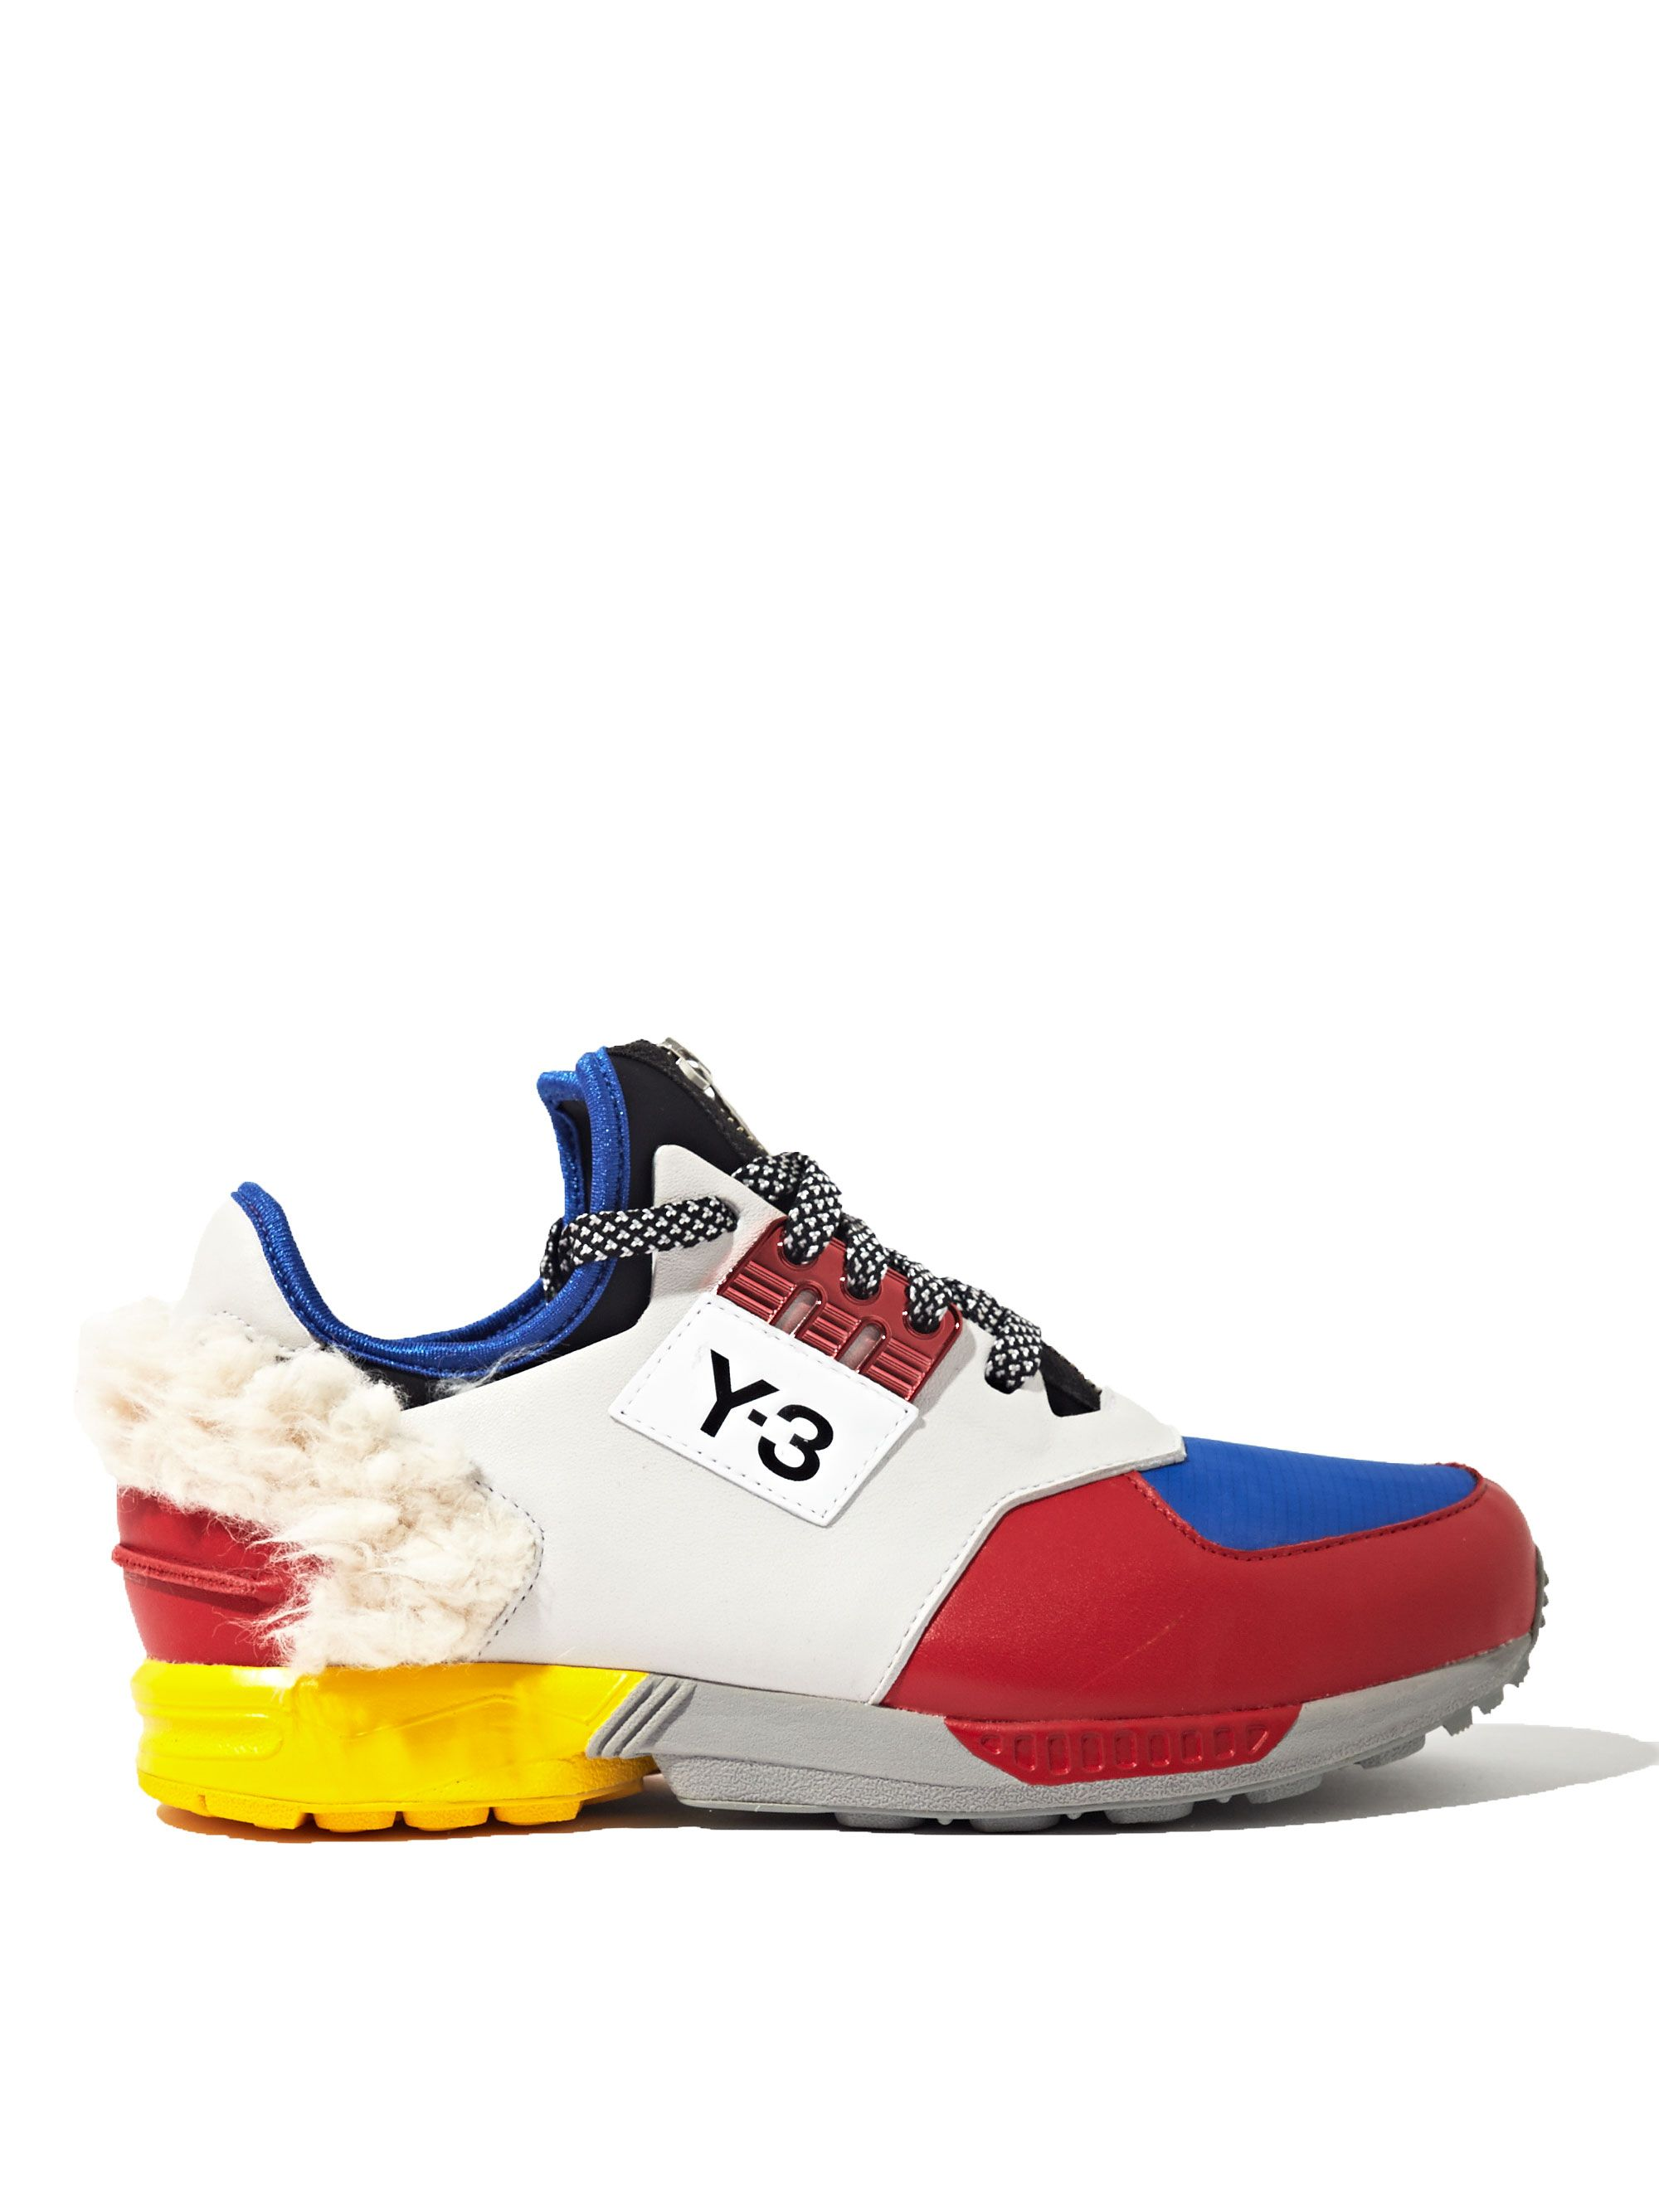 womens y3 trainers Online Shopping for